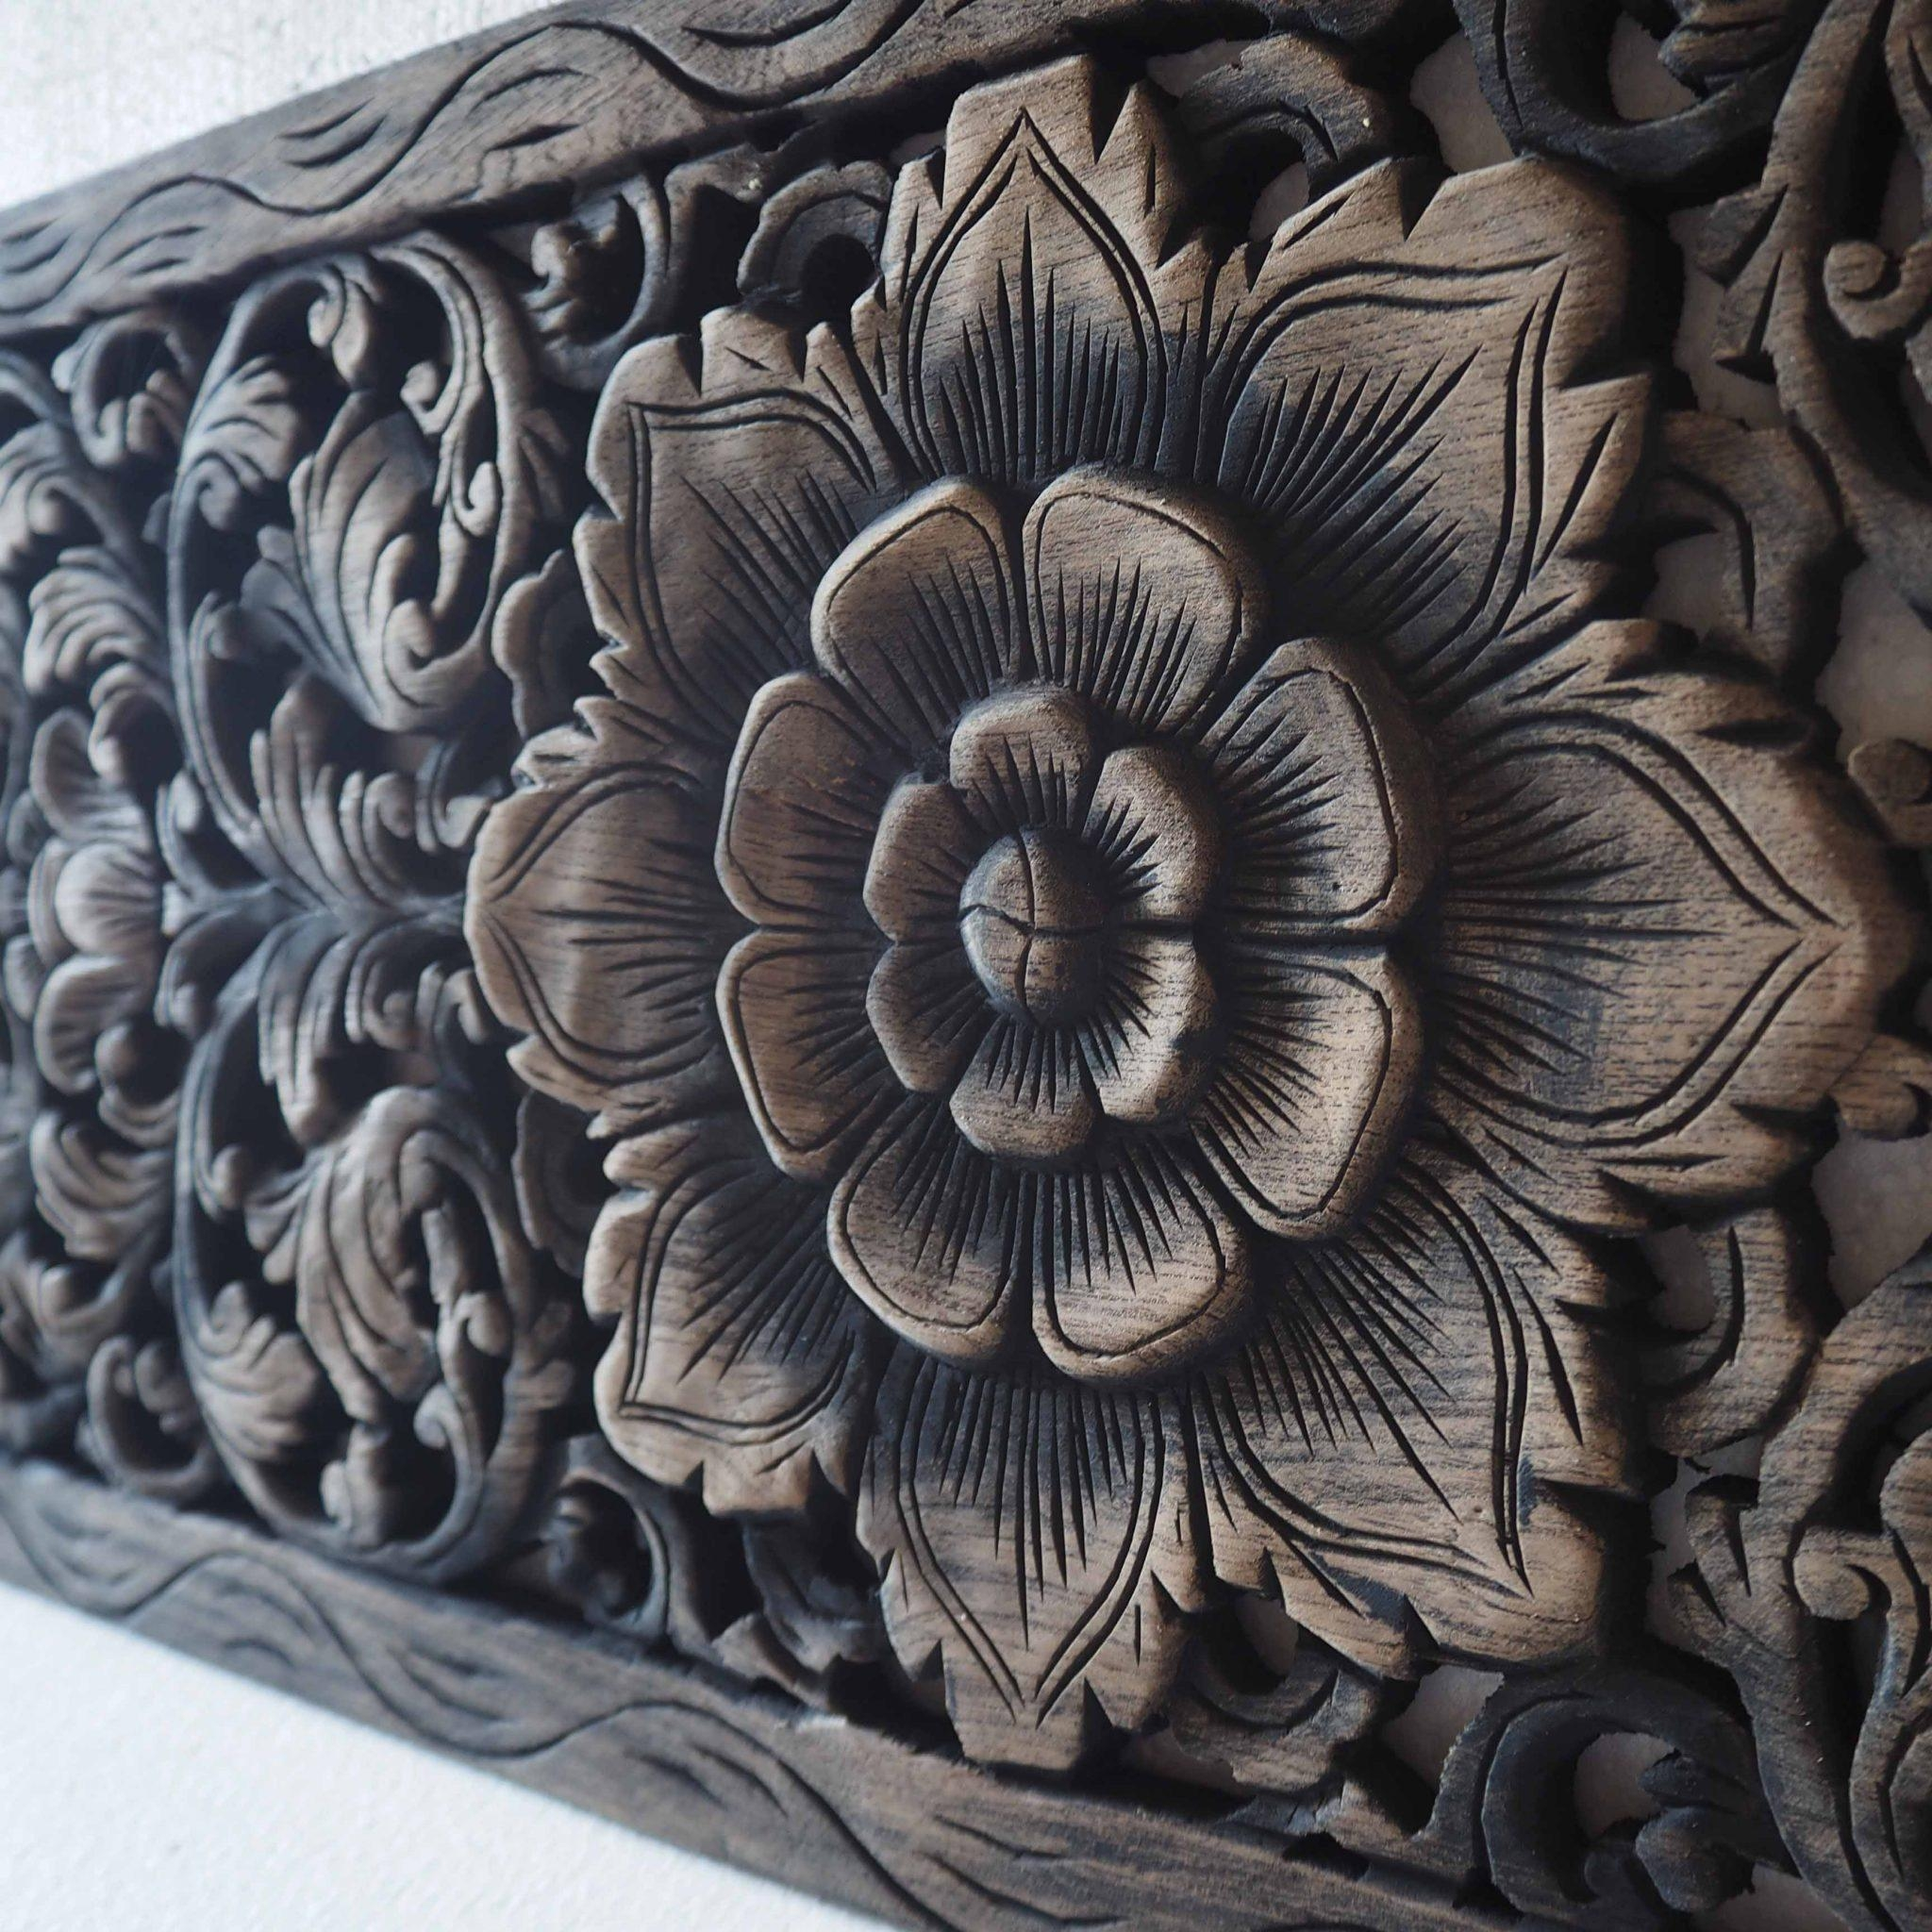 Thai Lotus Wood Carving Wall Art Panel – Siam Sawadee Within Wood Carved Wall Art Panels (Image 12 of 20)